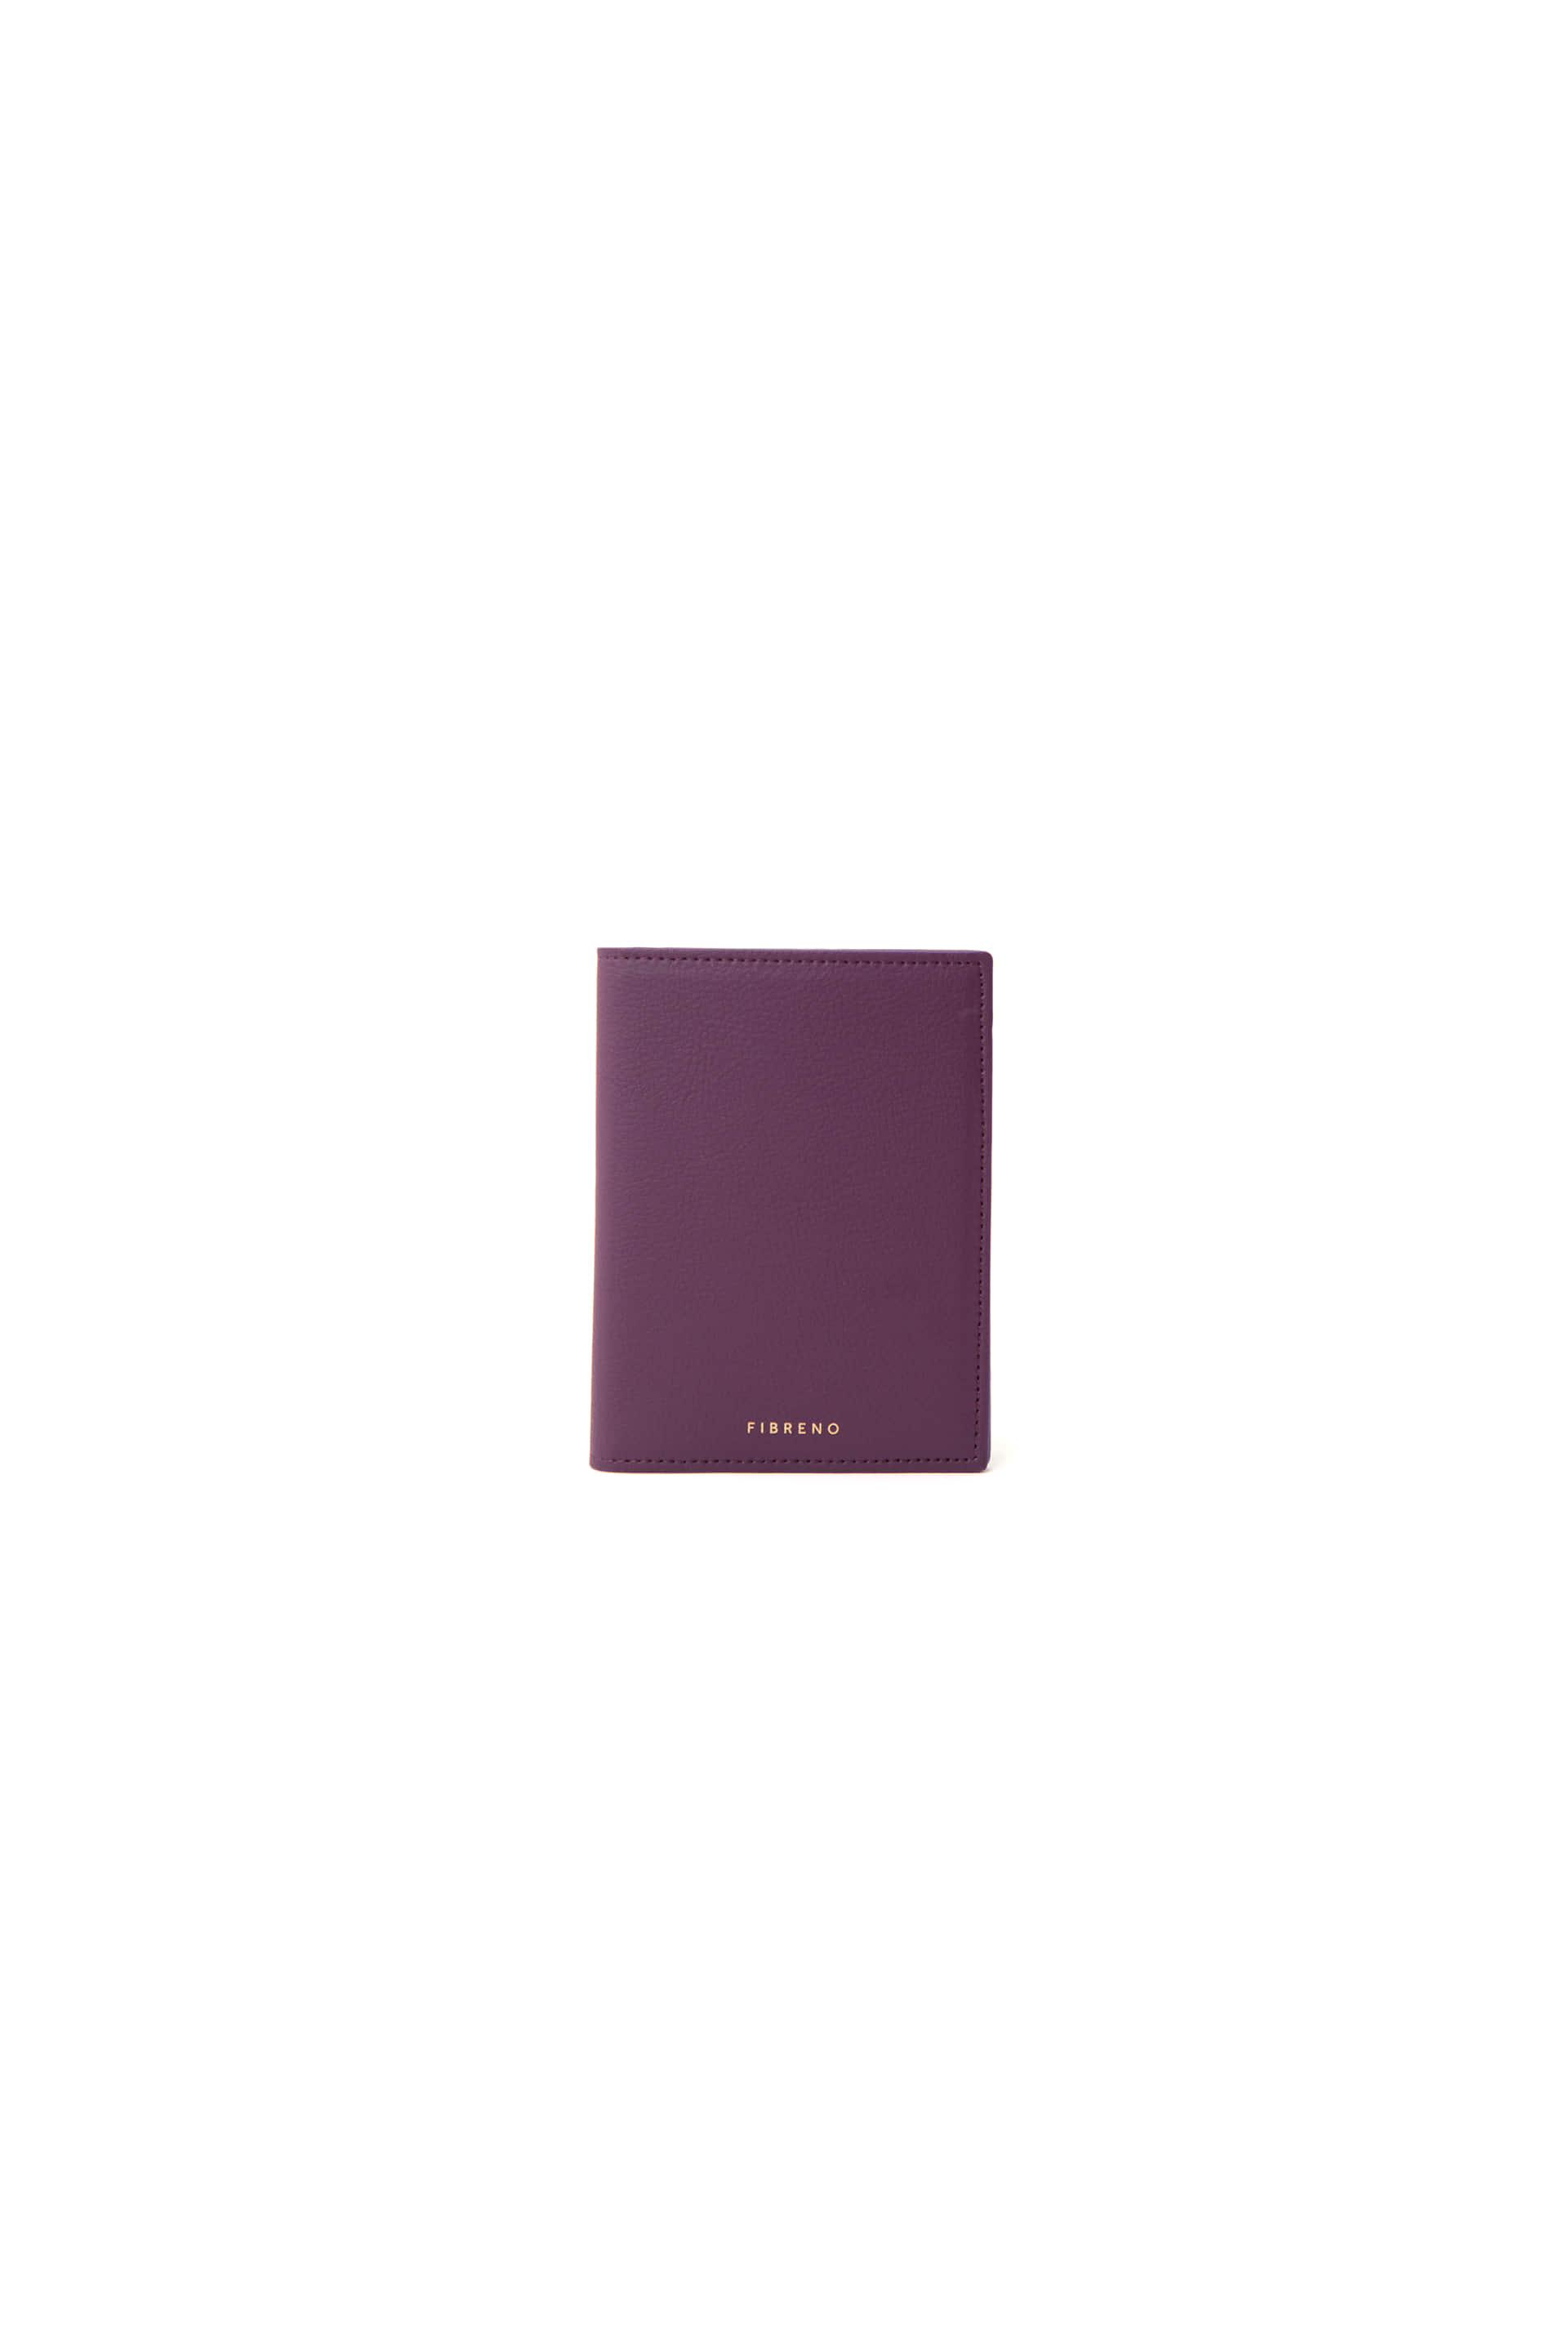 PASSPORT CASE 18 Purple